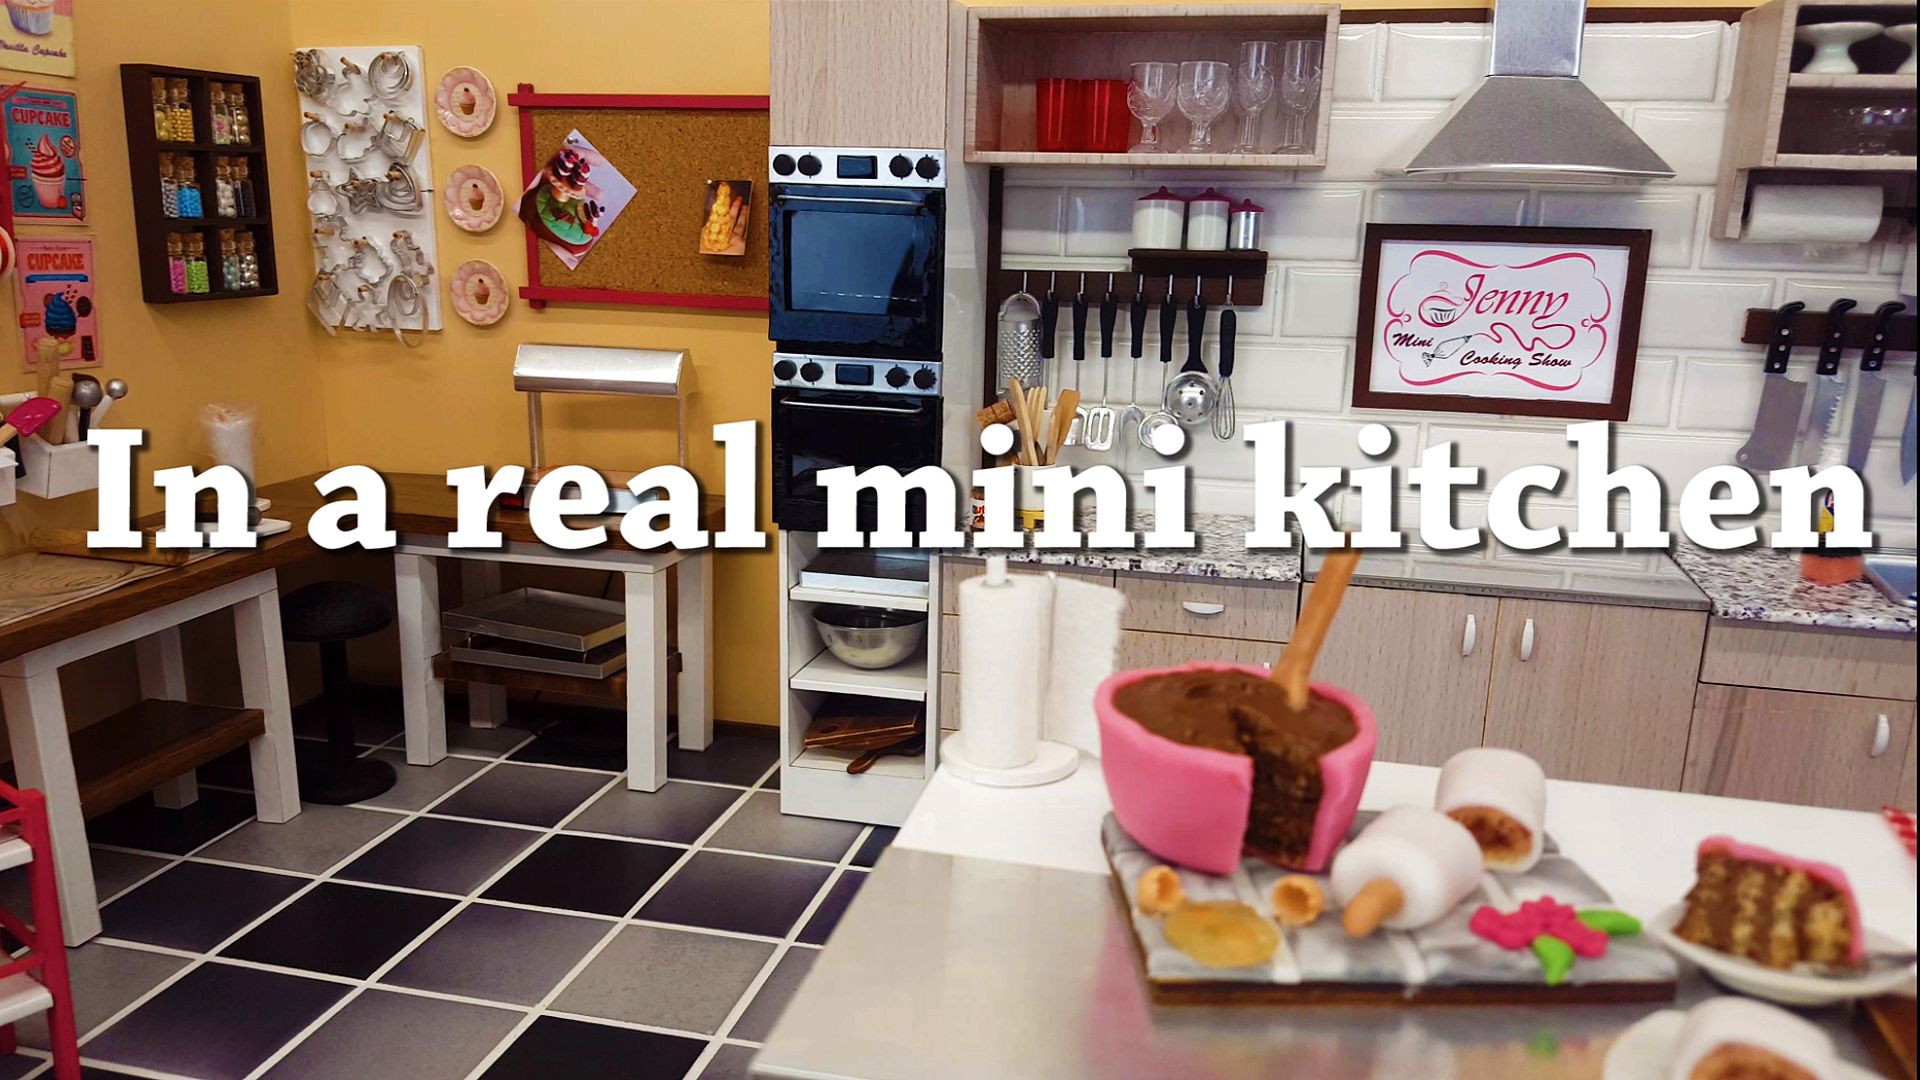 Jenny S Mini Cooking On Youtube And Baking Preparation Of The Kitchen Took 6 Months Oven T Kids Toy Tiny Real